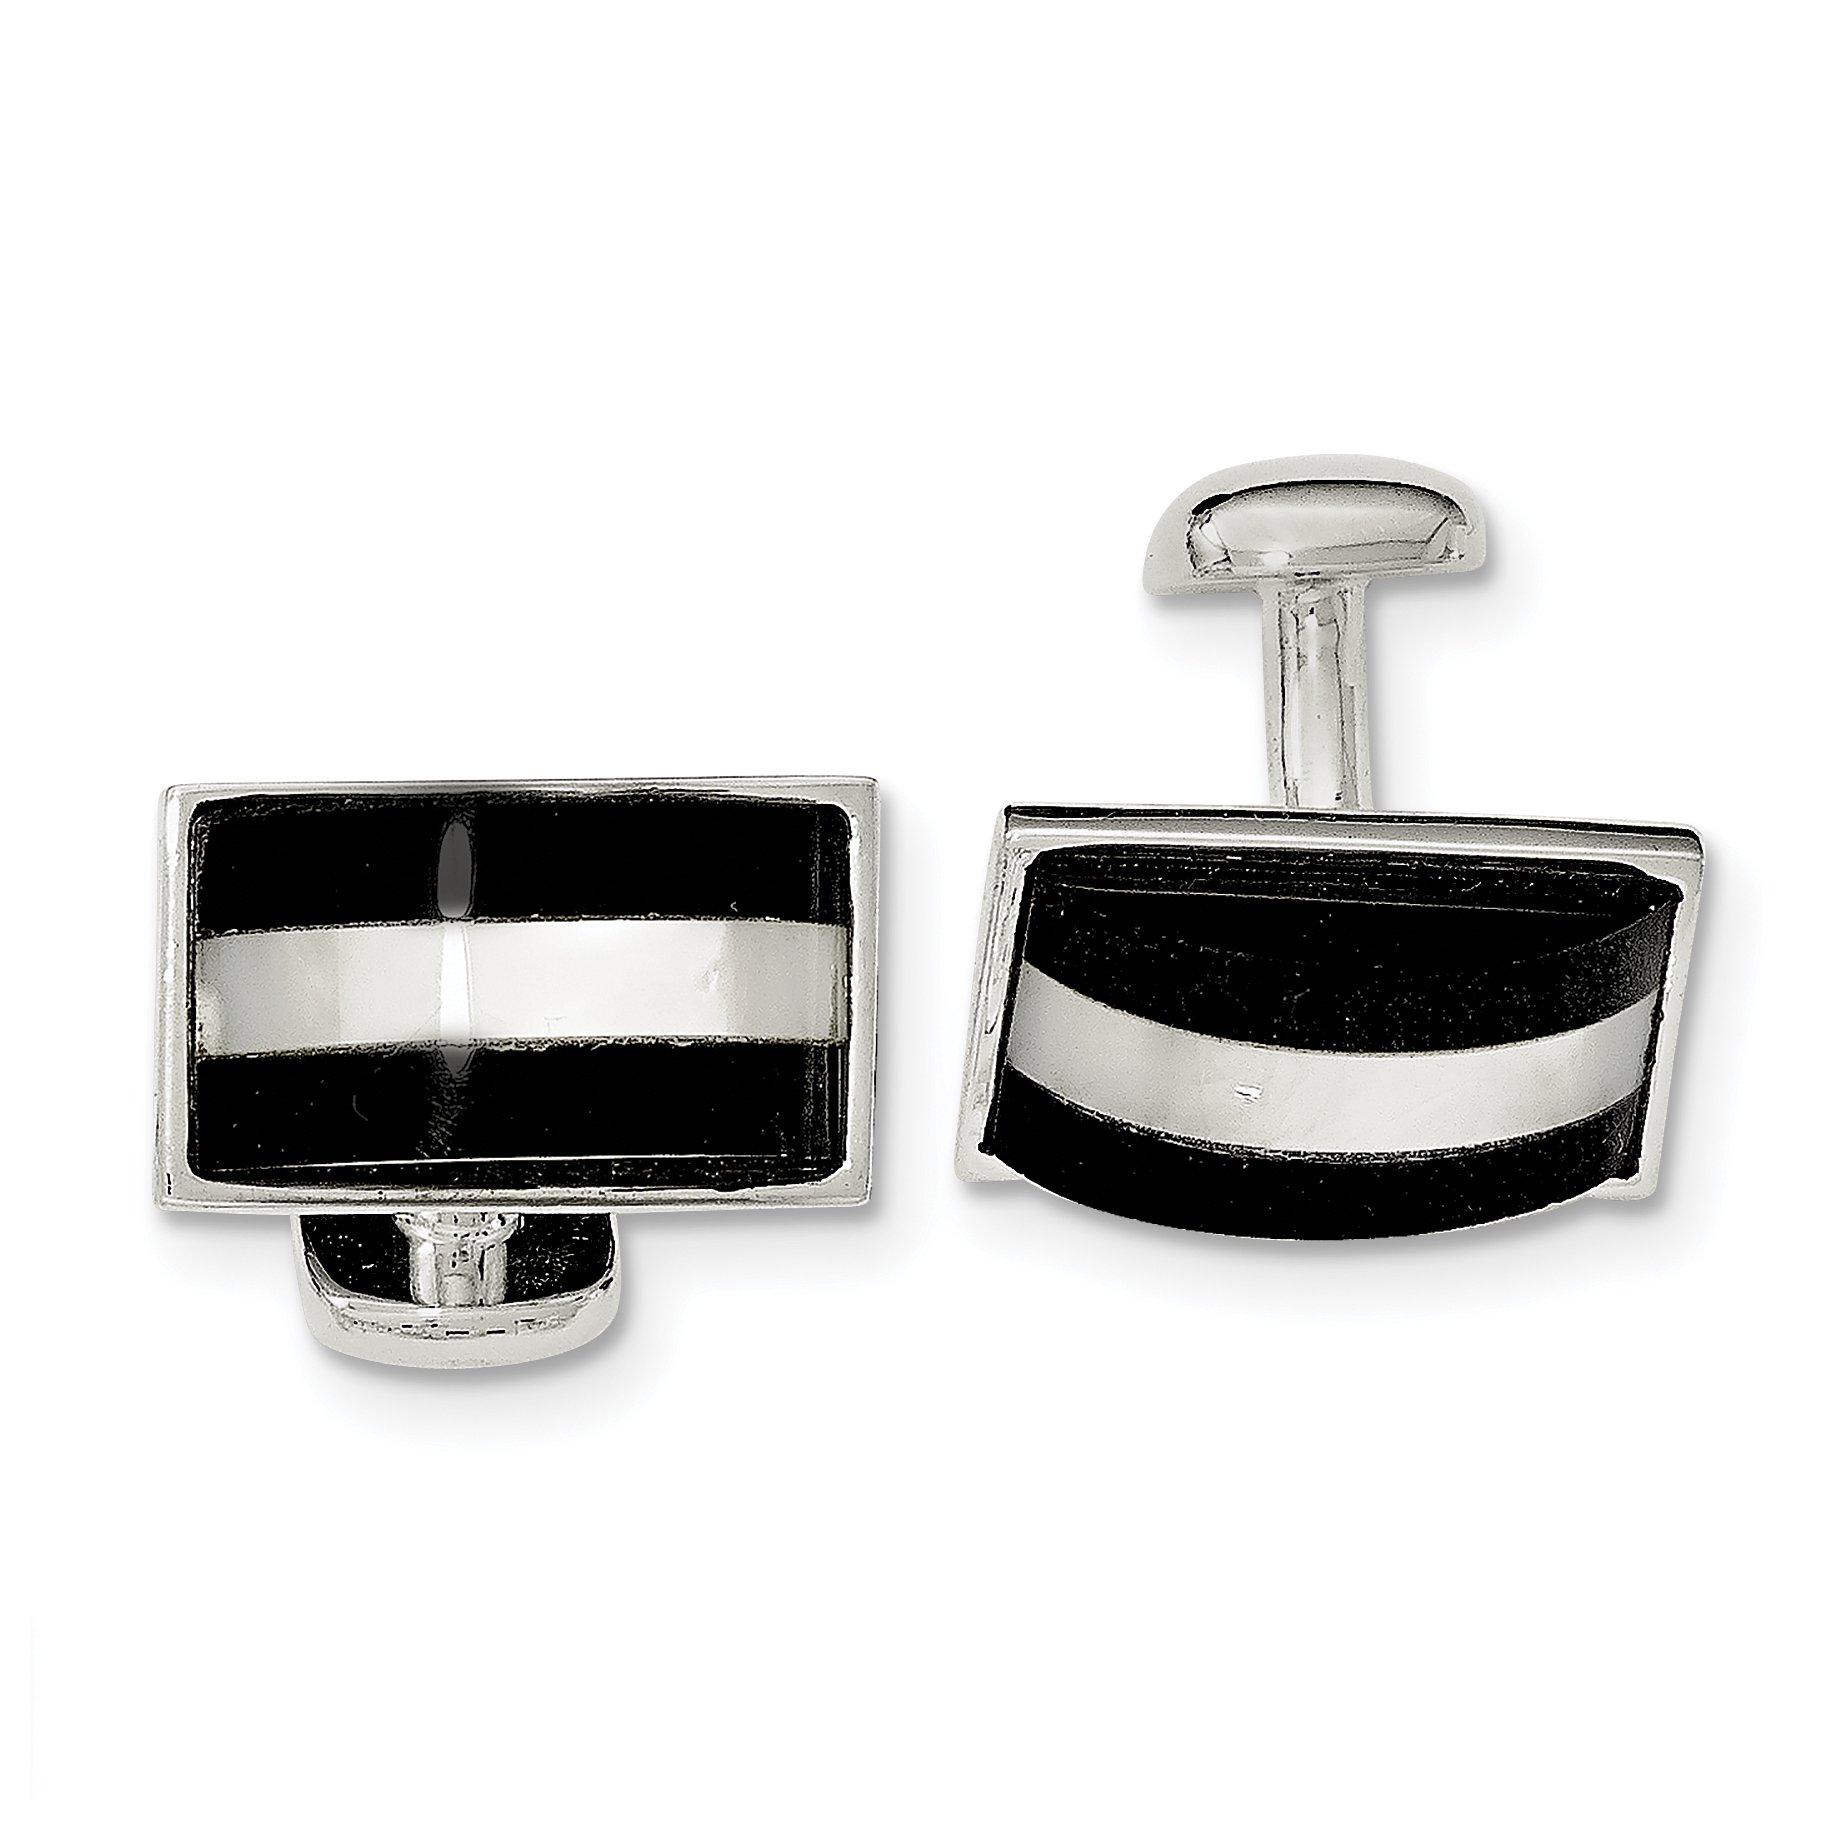 ICE CARATS 925 Sterling Silver Mother Of Pearl Black Onyx Cuff Links Mens Cufflinks Link Man Fine Jewelry Dad Mens Gift Set